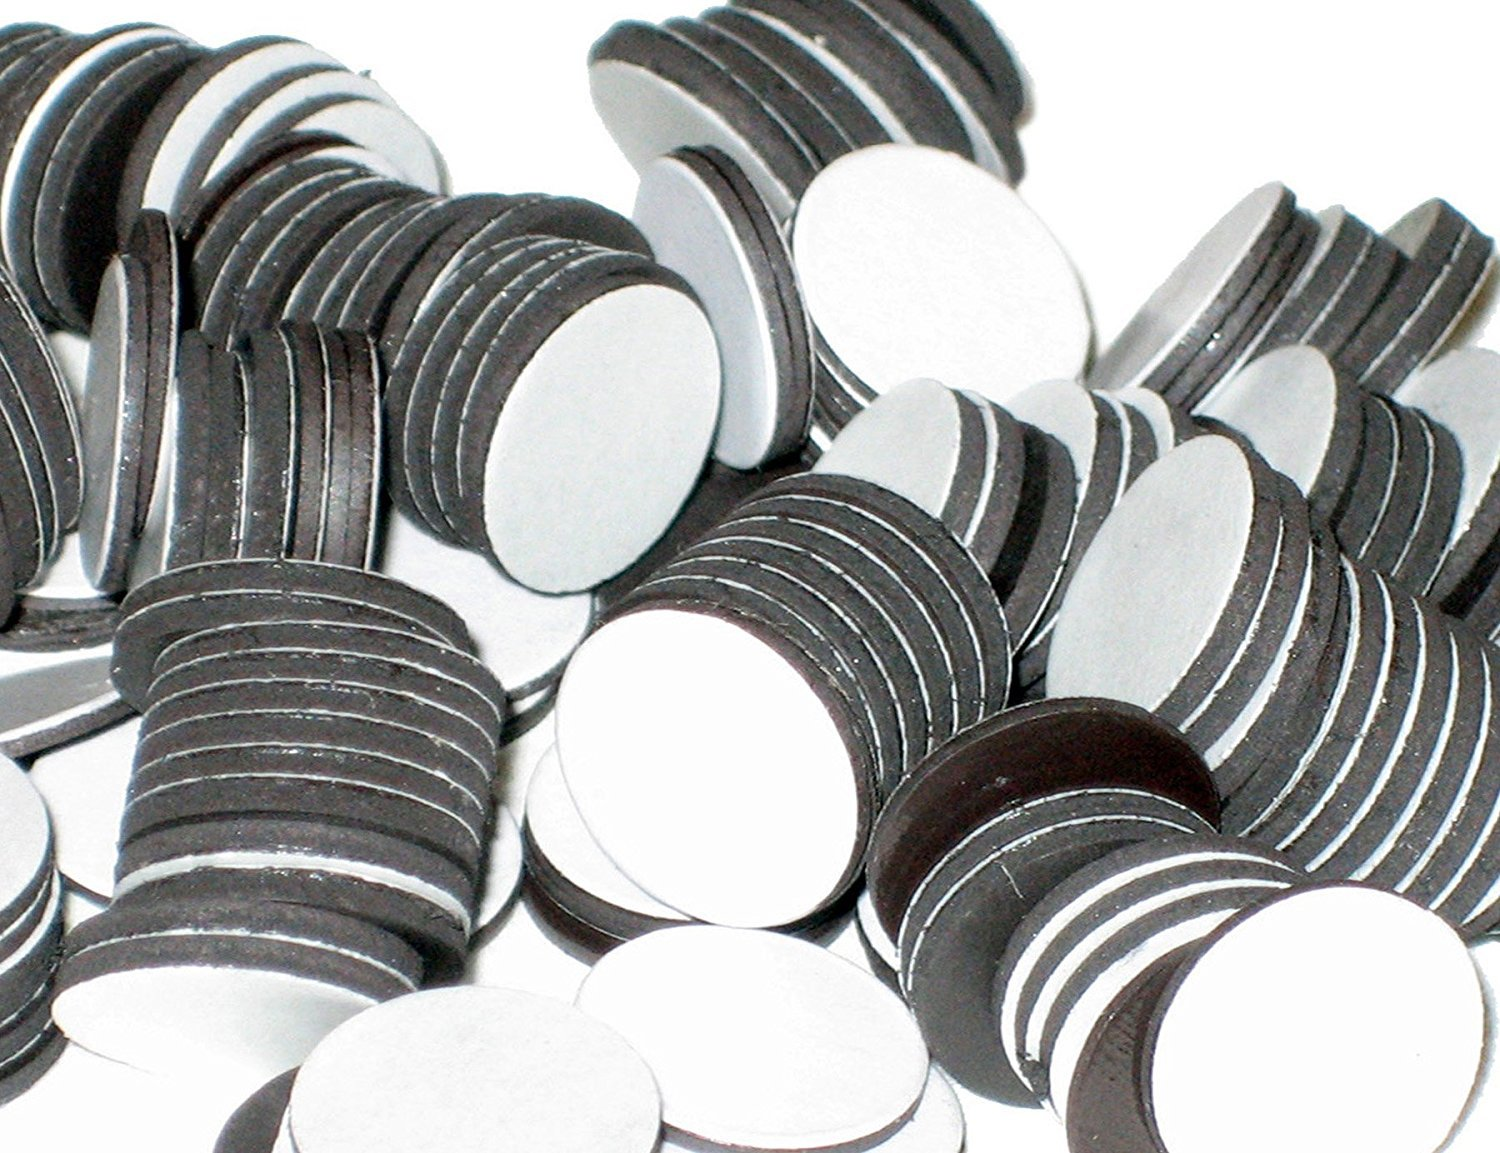 BYKES Magnets 3/4 Round Disc with Adhesive Backing - 200 Pcs BYKES Technologies® AH2